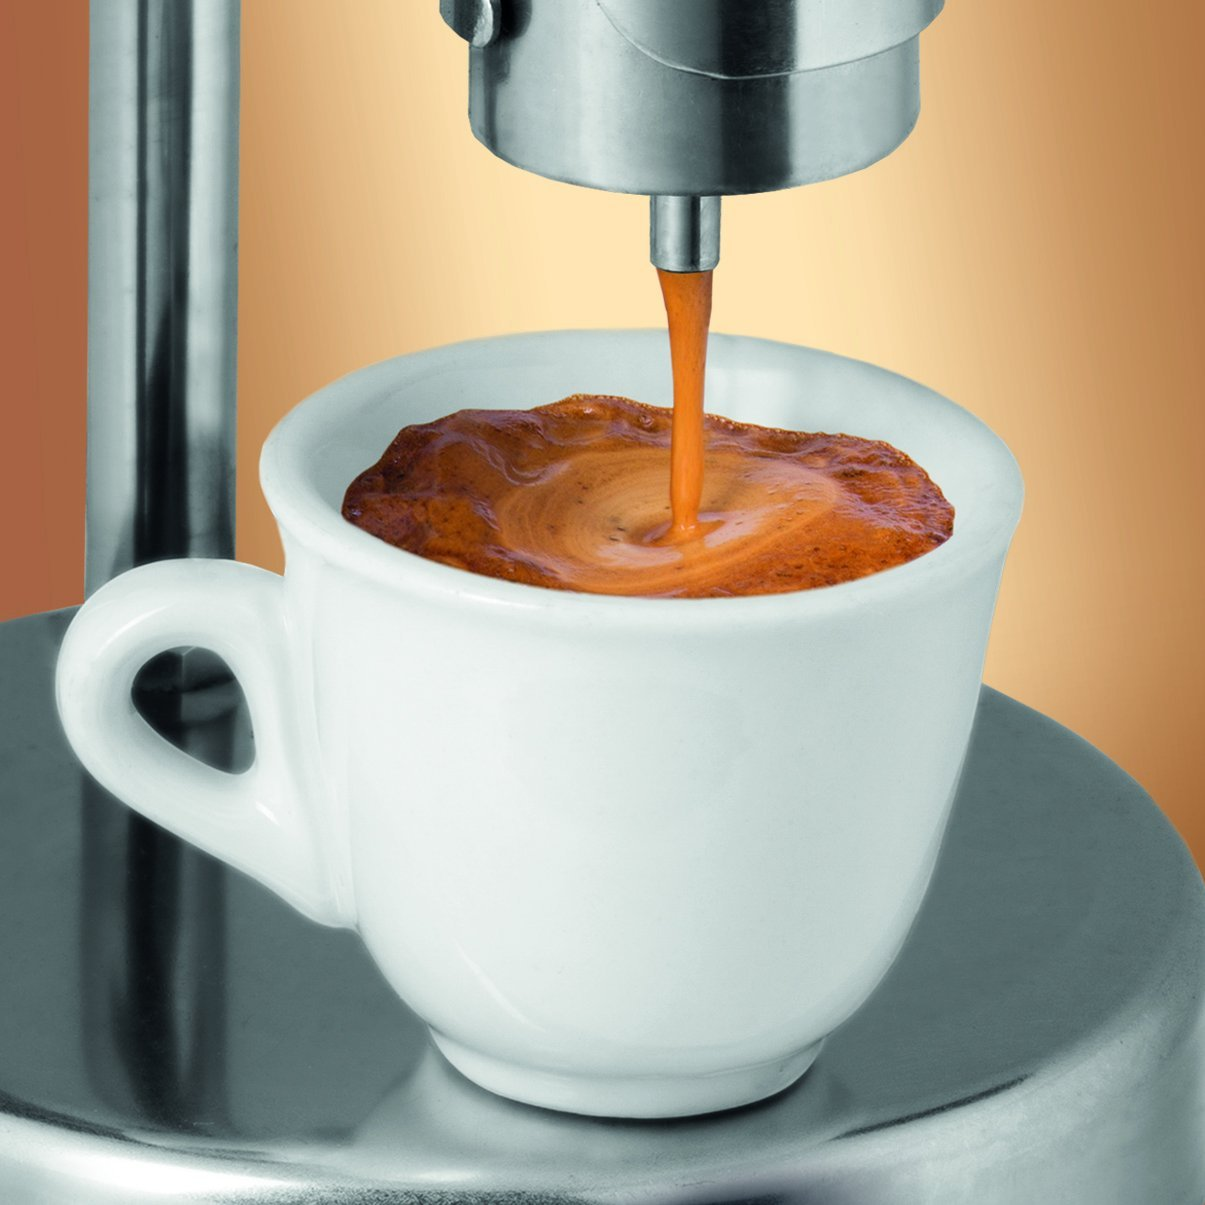 KAMIRA Moka Express 1/2 Cups Stovetop Espresso Maker. The perfect gift! Made in  Italy by KAMIRA (Image #2)